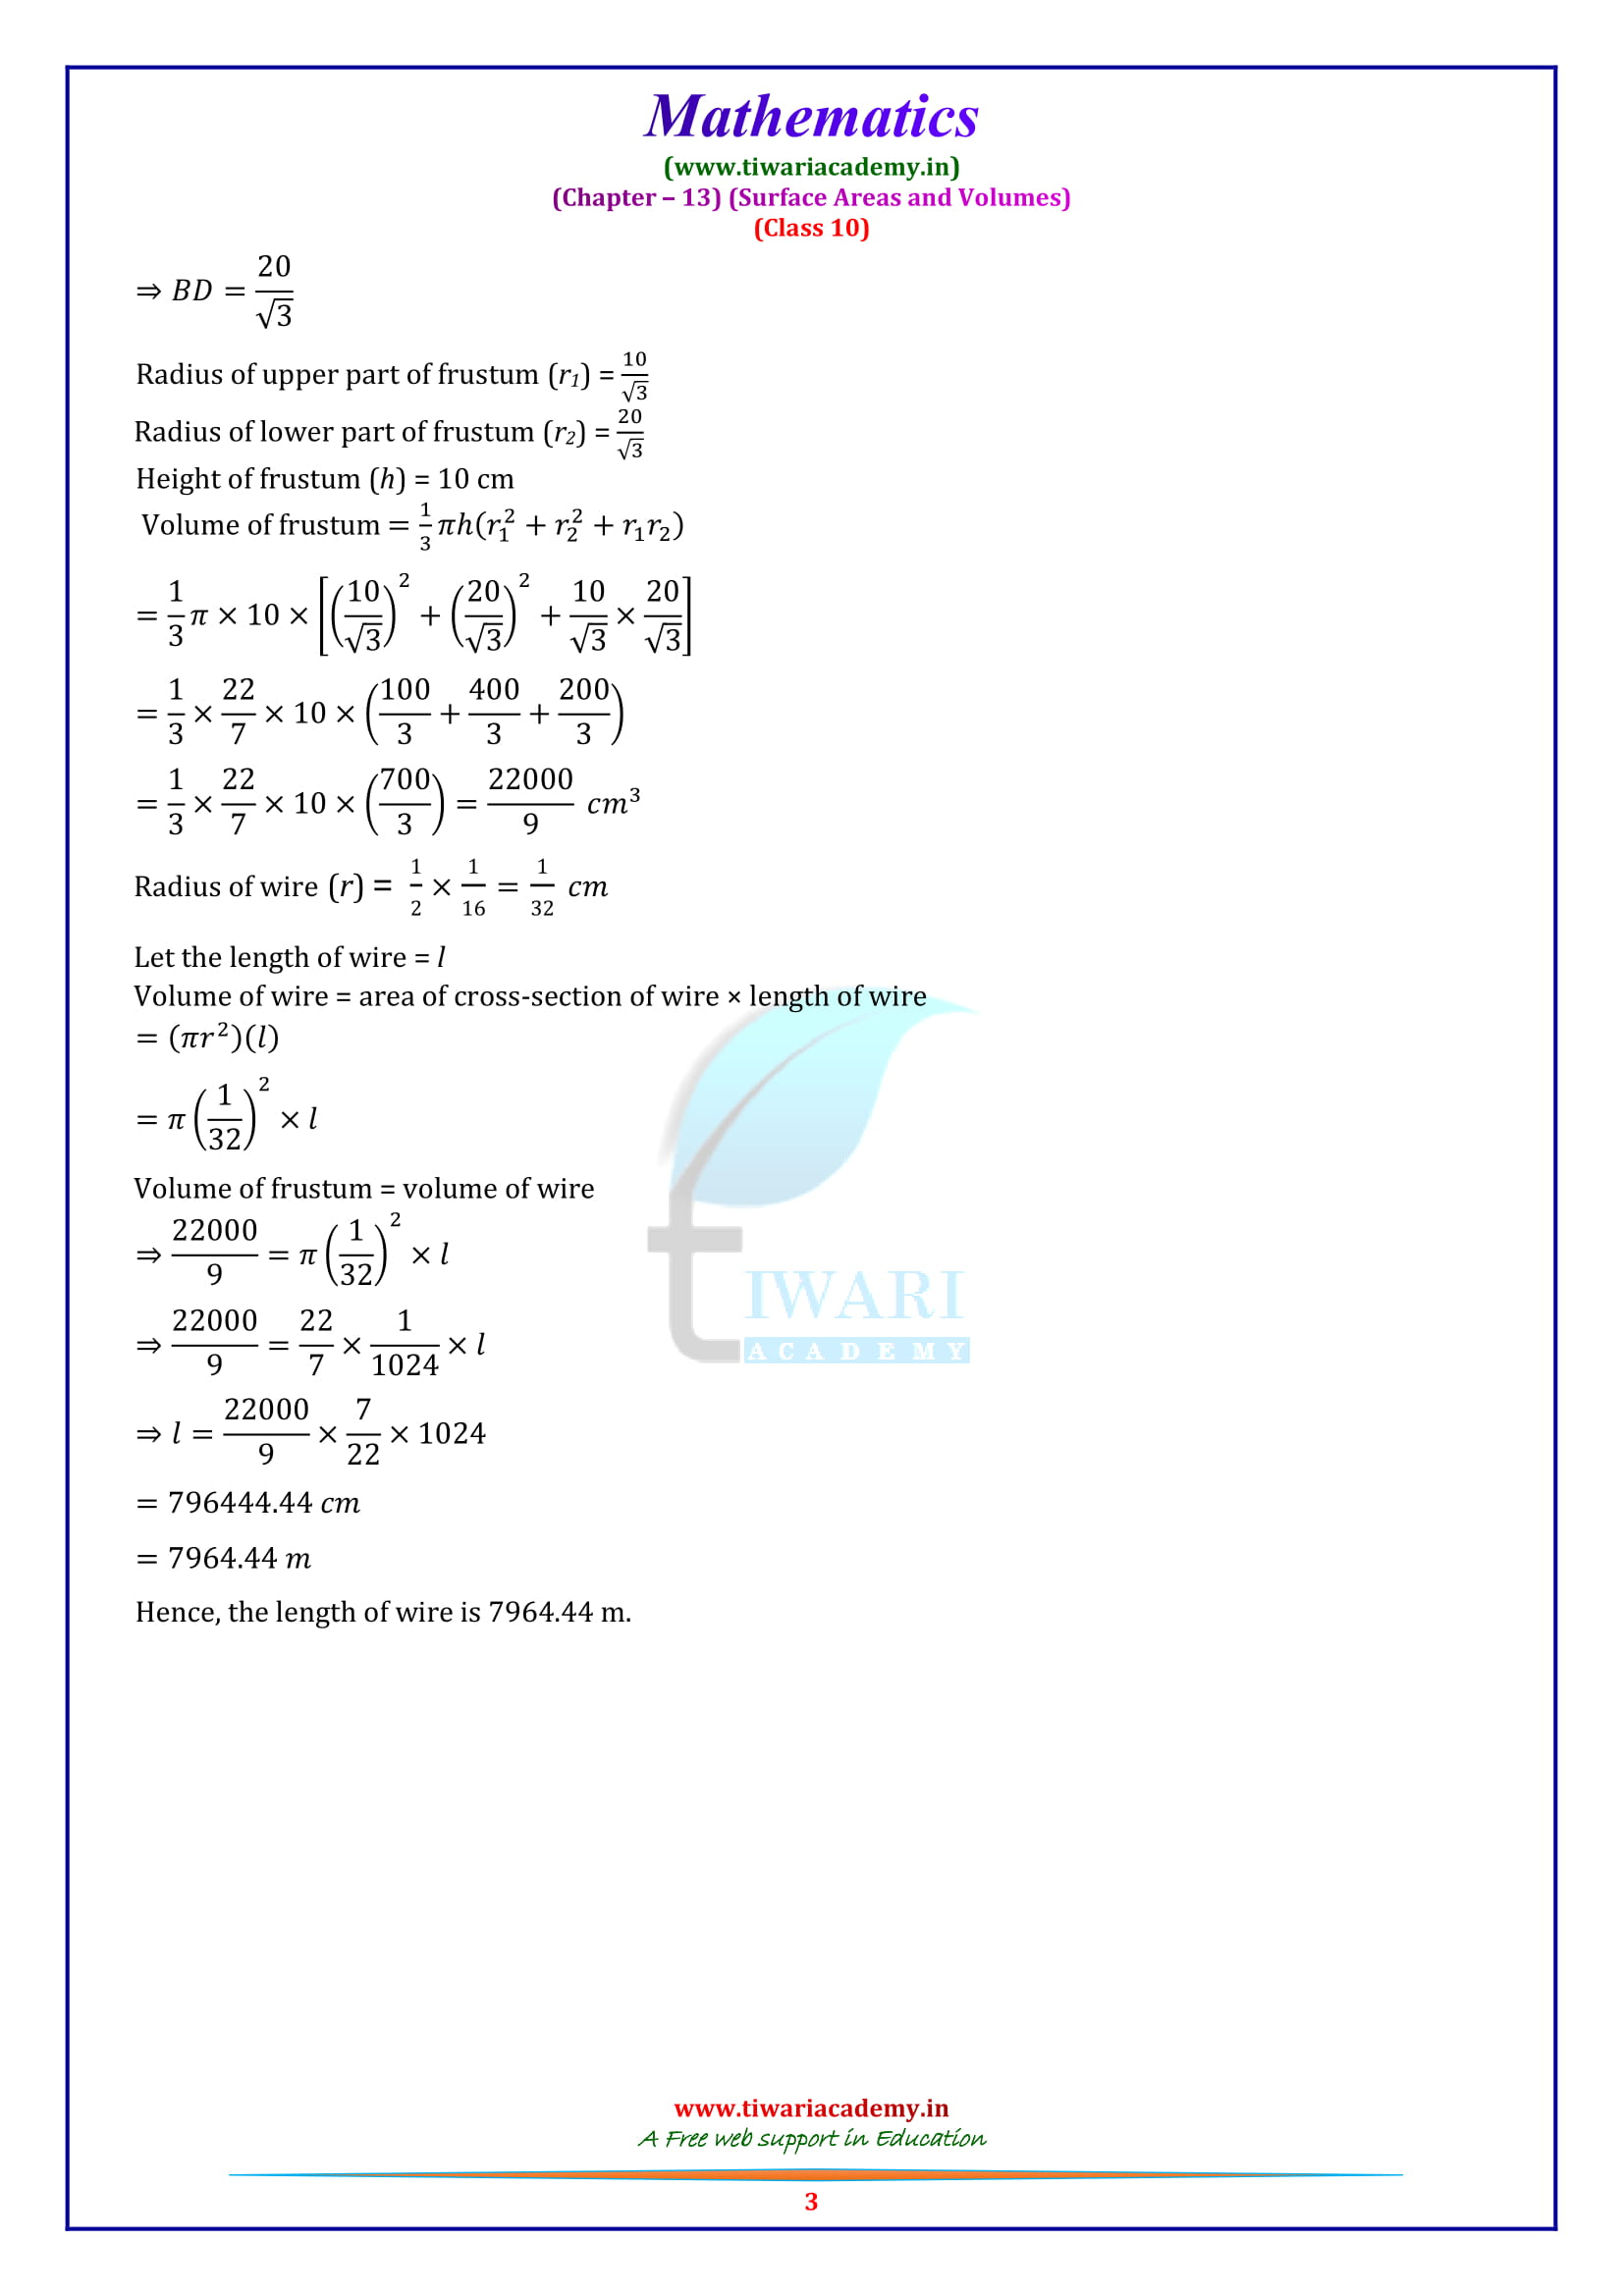 NCERT Solutions for class 10 Maths Exercise 13.4 for up and mp board students